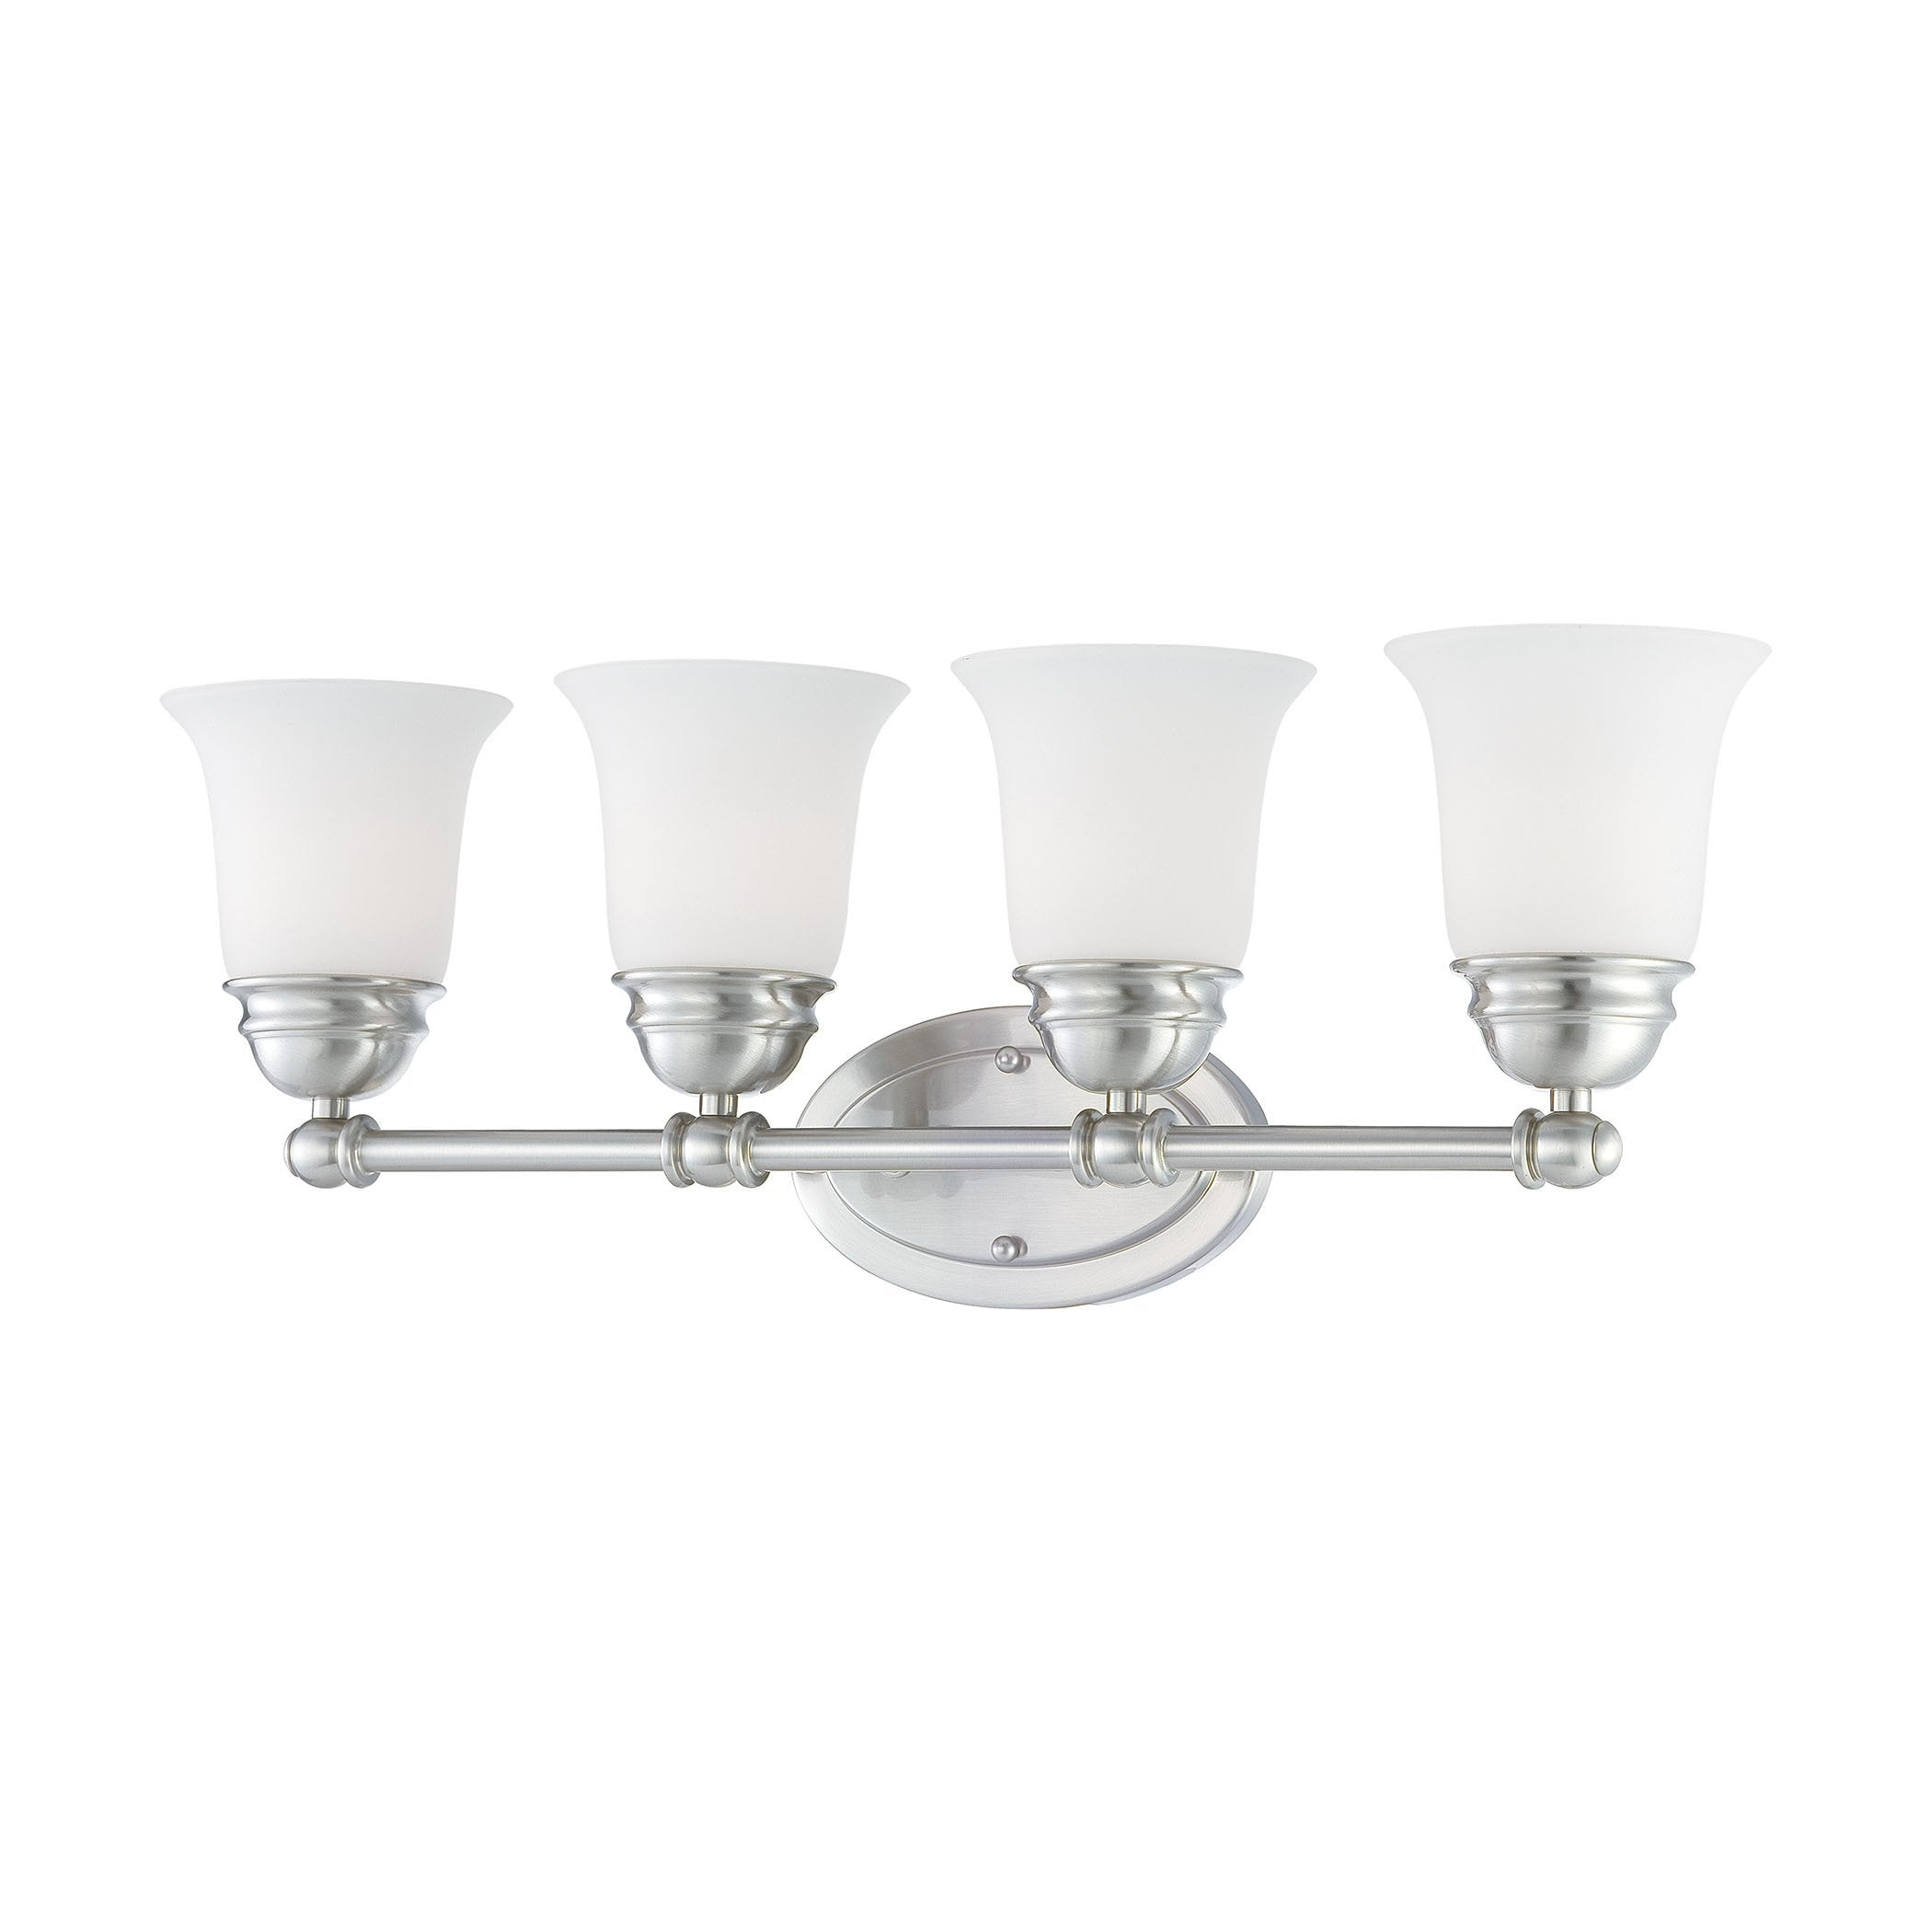 Thomas Lighting SL714478 Bella Collection Brushed Nickel Finish Traditional Wall Sconce